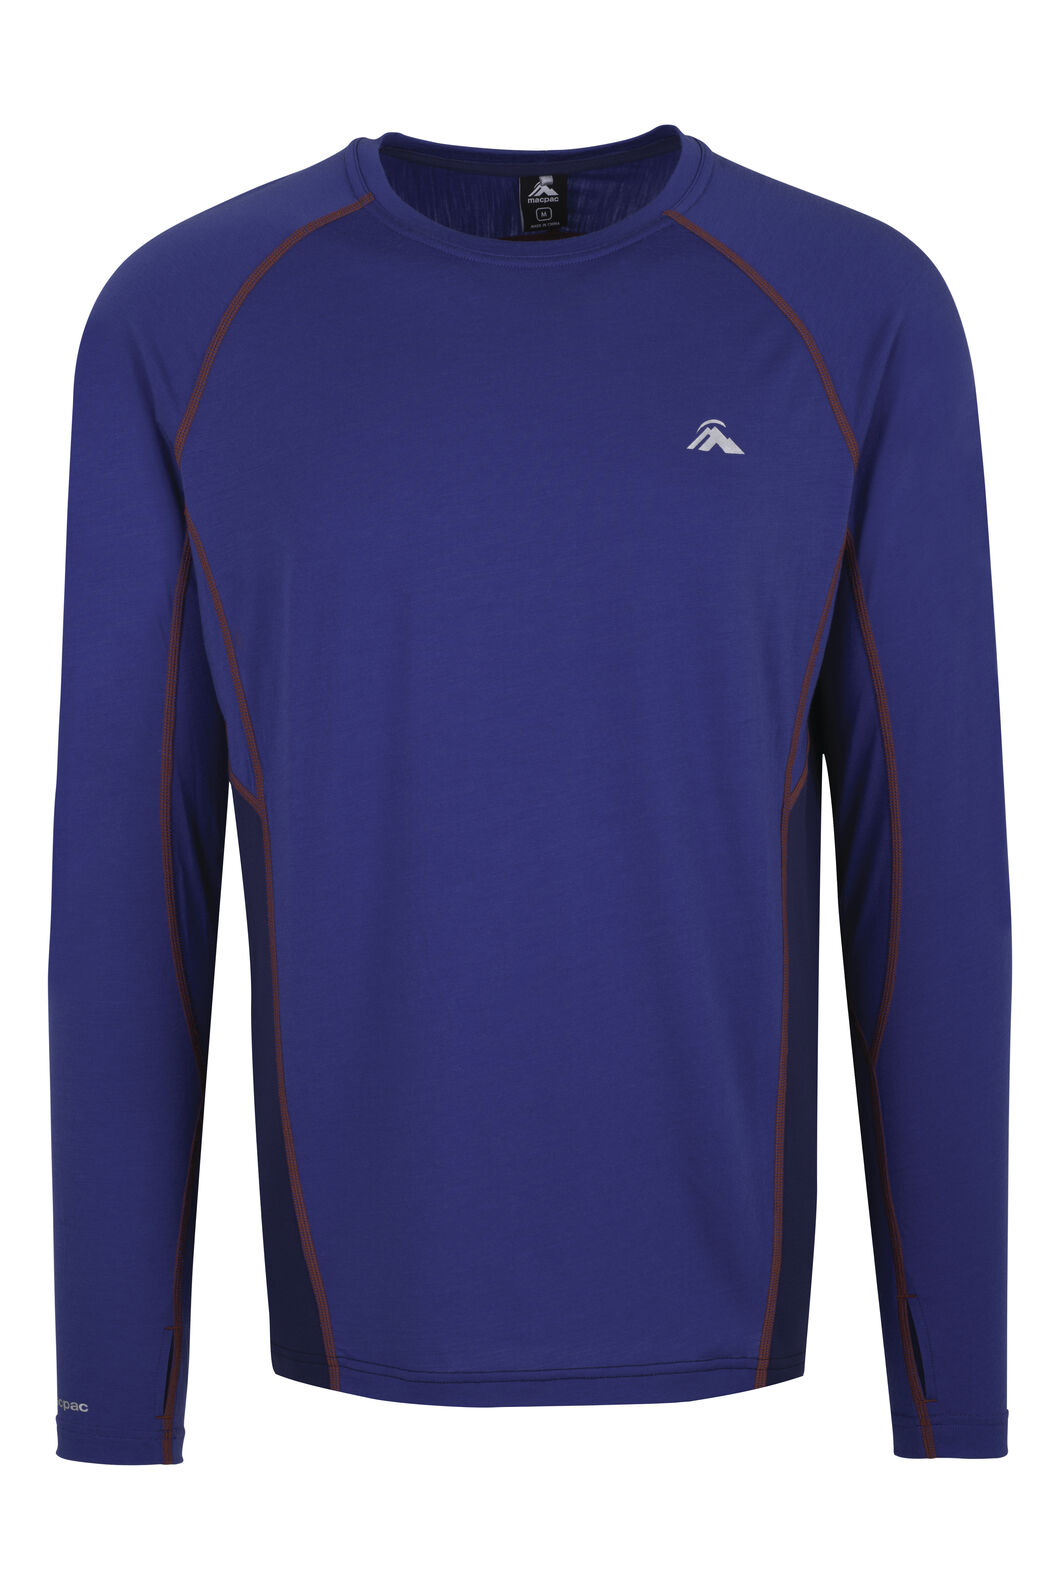 Casswell Long Sleeve Merino Crew - Men's, Sodalite Blue, hi-res